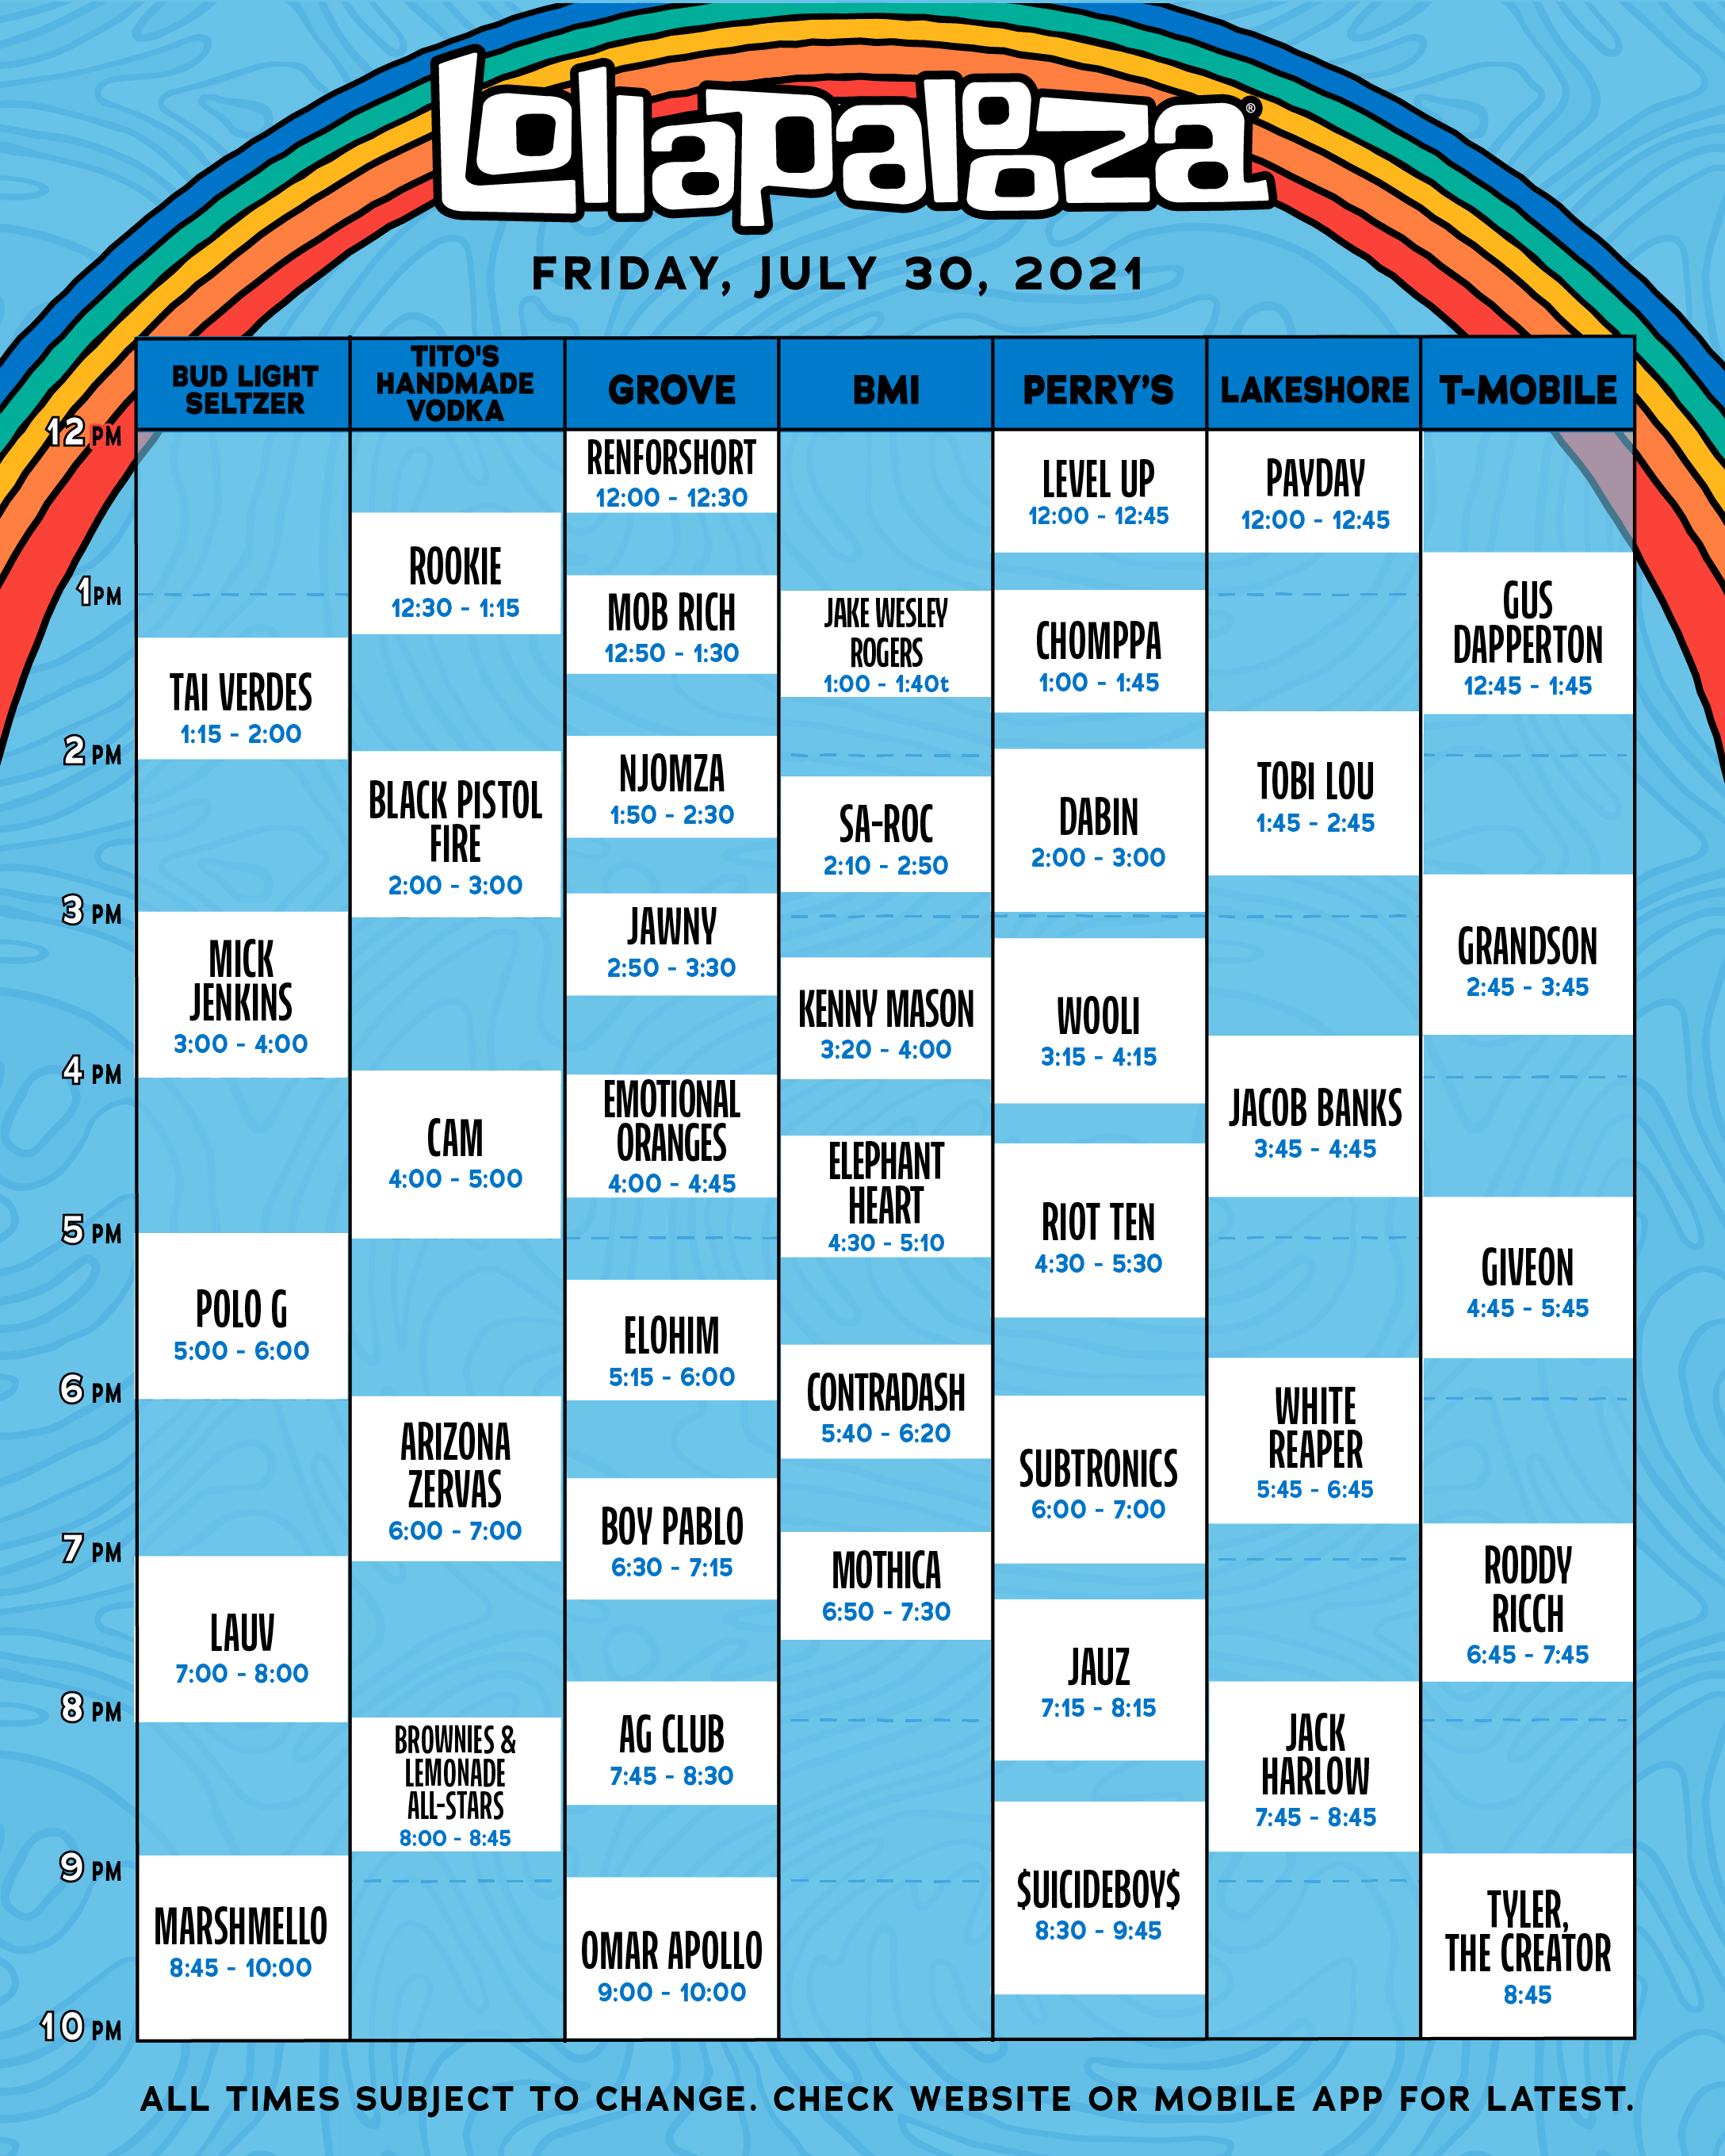 Lollapalooza Full 2021 Schedule Announced! 3